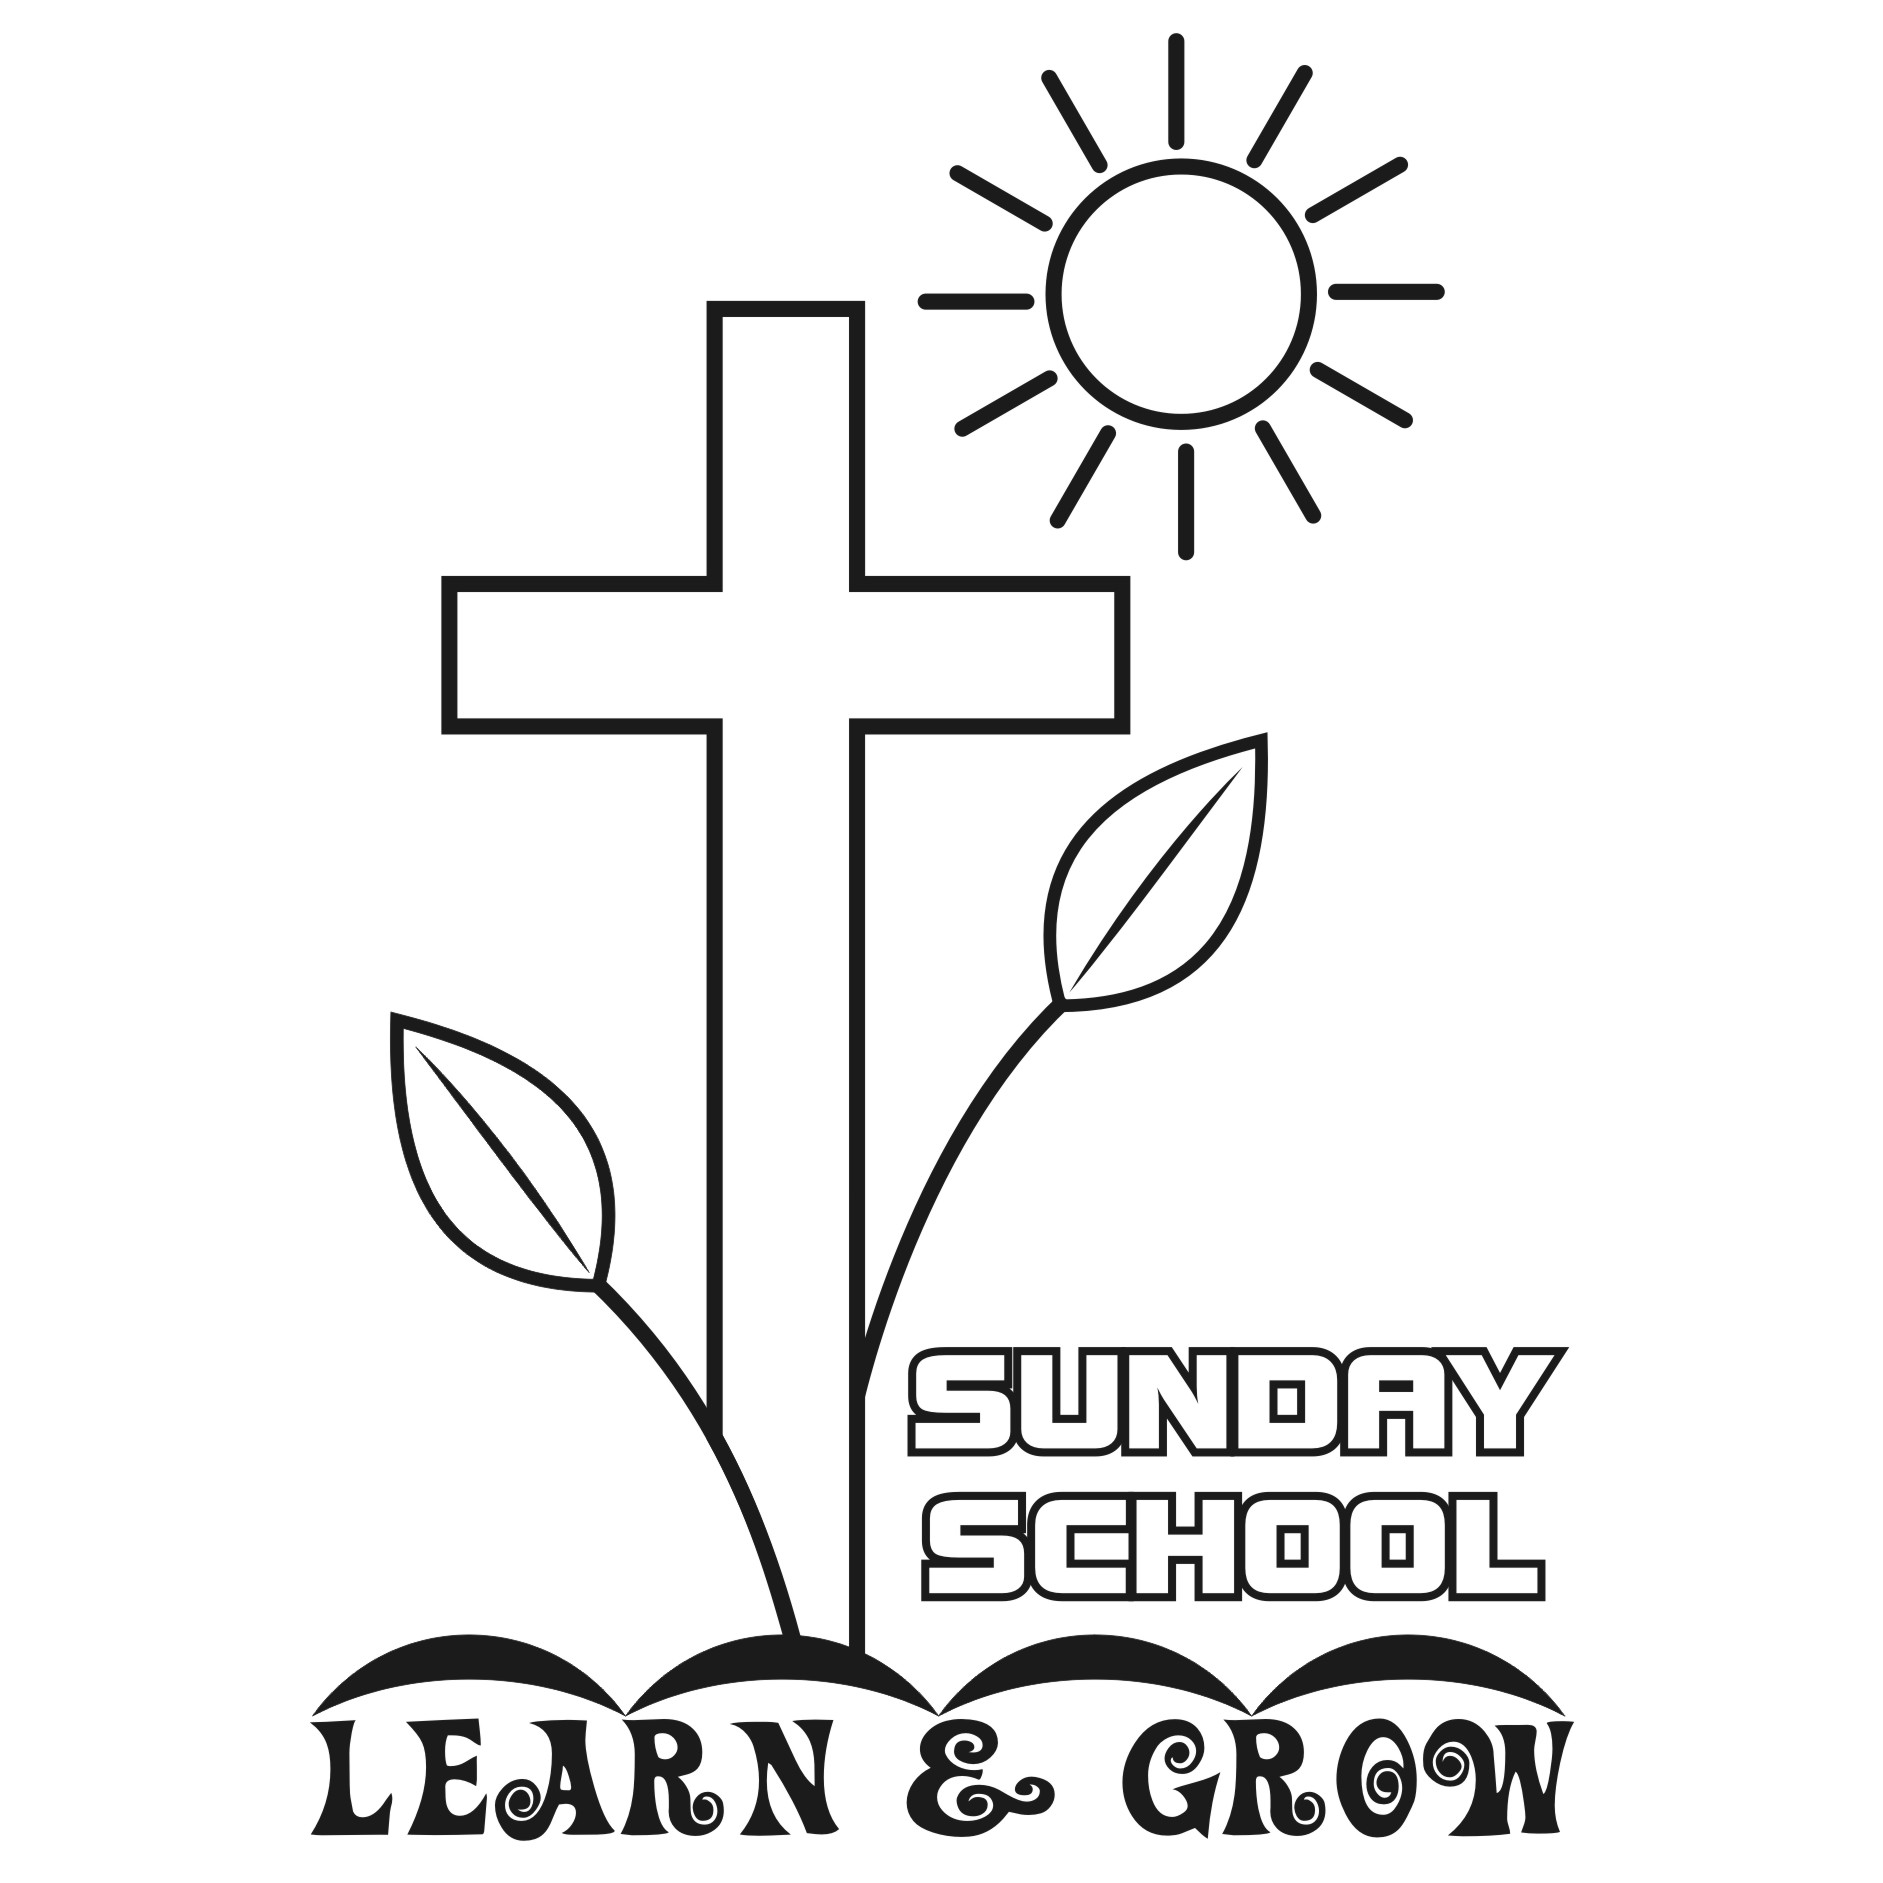 Clip Art Sunday School Clip Art christian sunday school clipart kid design ideas religious school